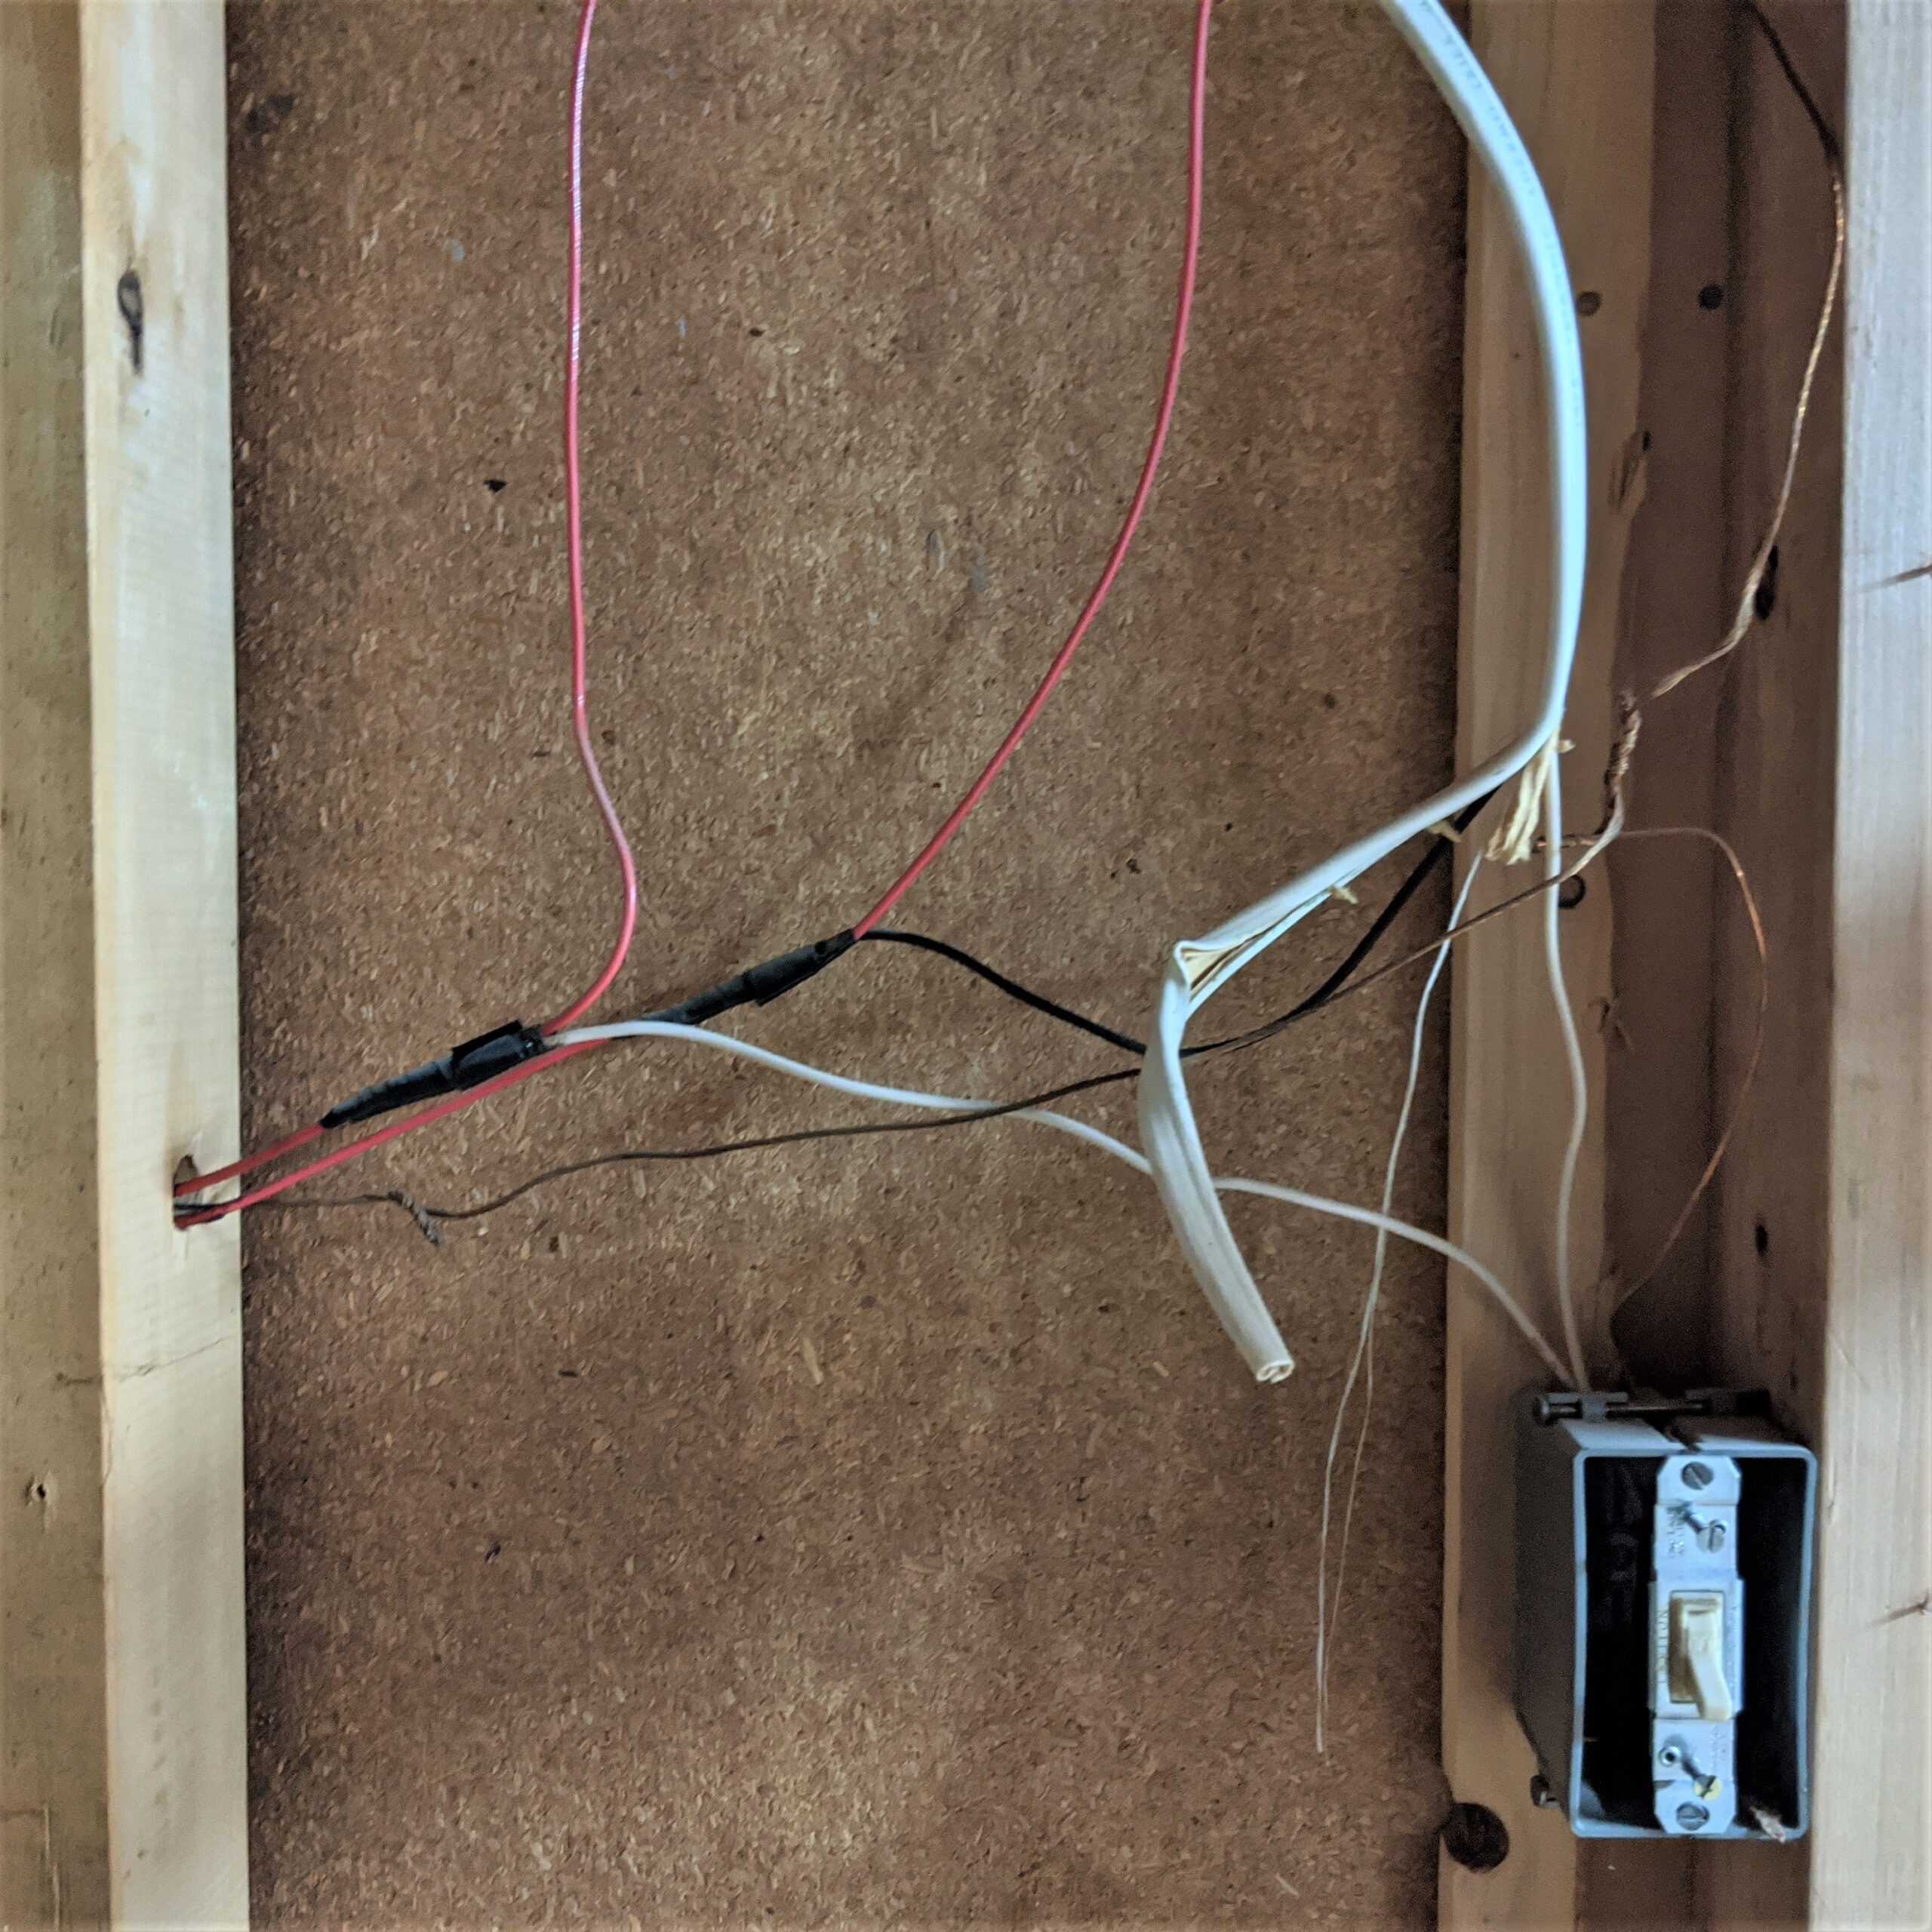 This frightful DIY wiring was hidden by the wooden paneling in the basement of our first home. Luckily, we planned to finish the basement and hire a state-licensed electrician to install all new wiring per electrical safety codes.